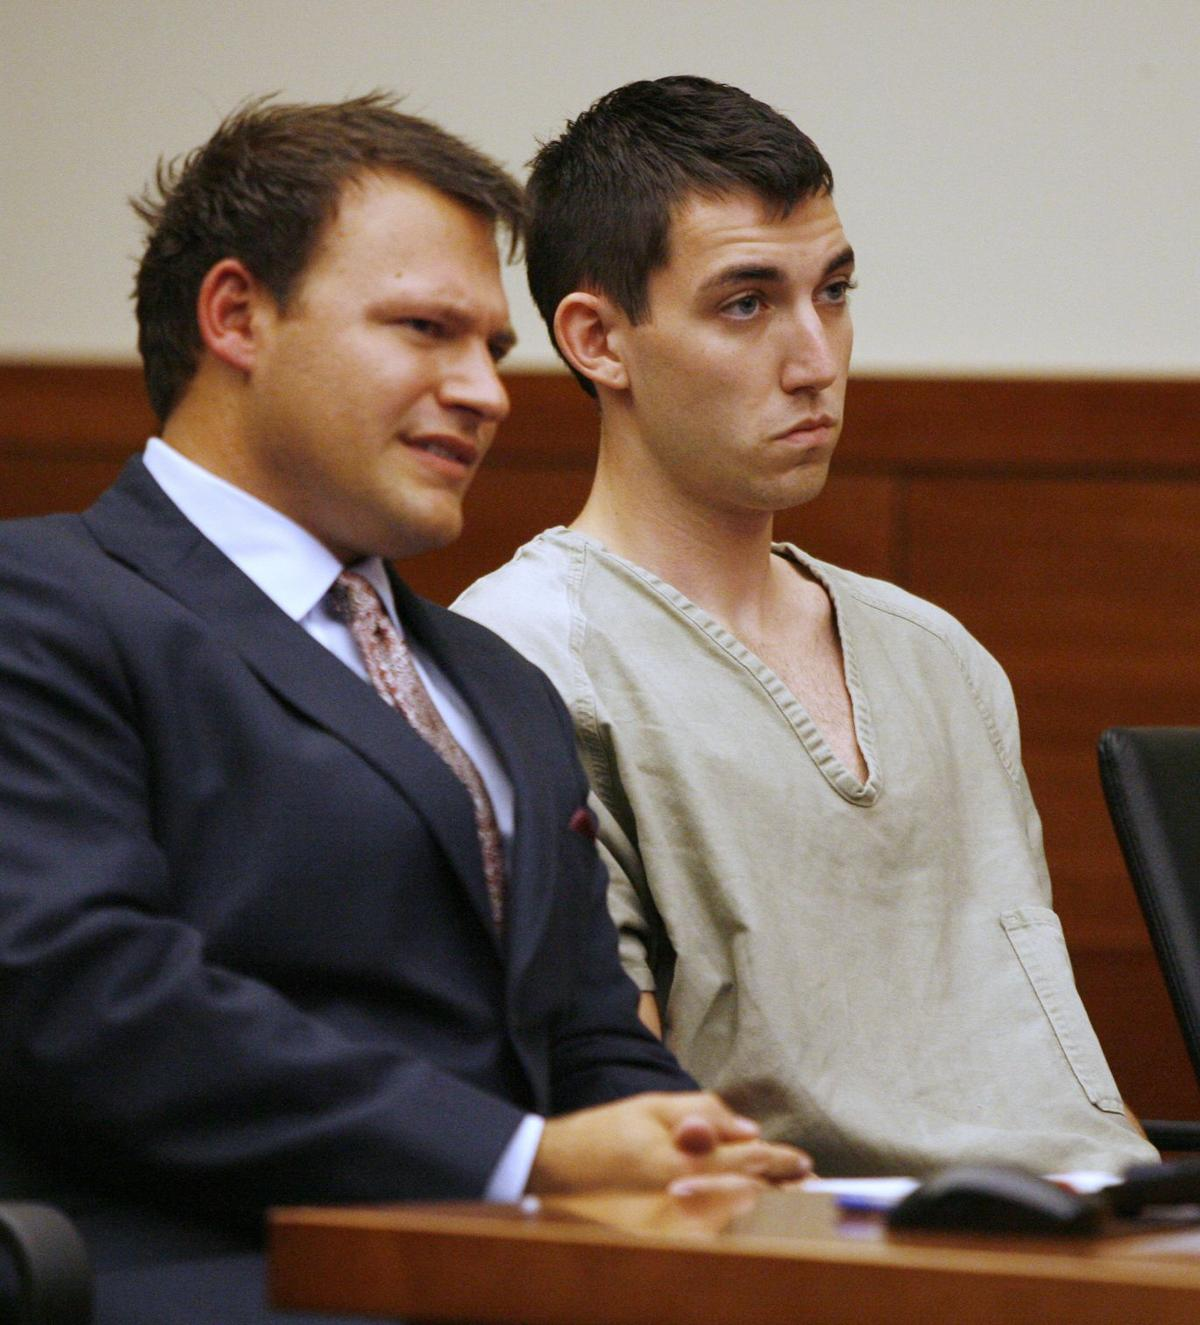 Man who confessed to DUI in online video expected to plead guilty